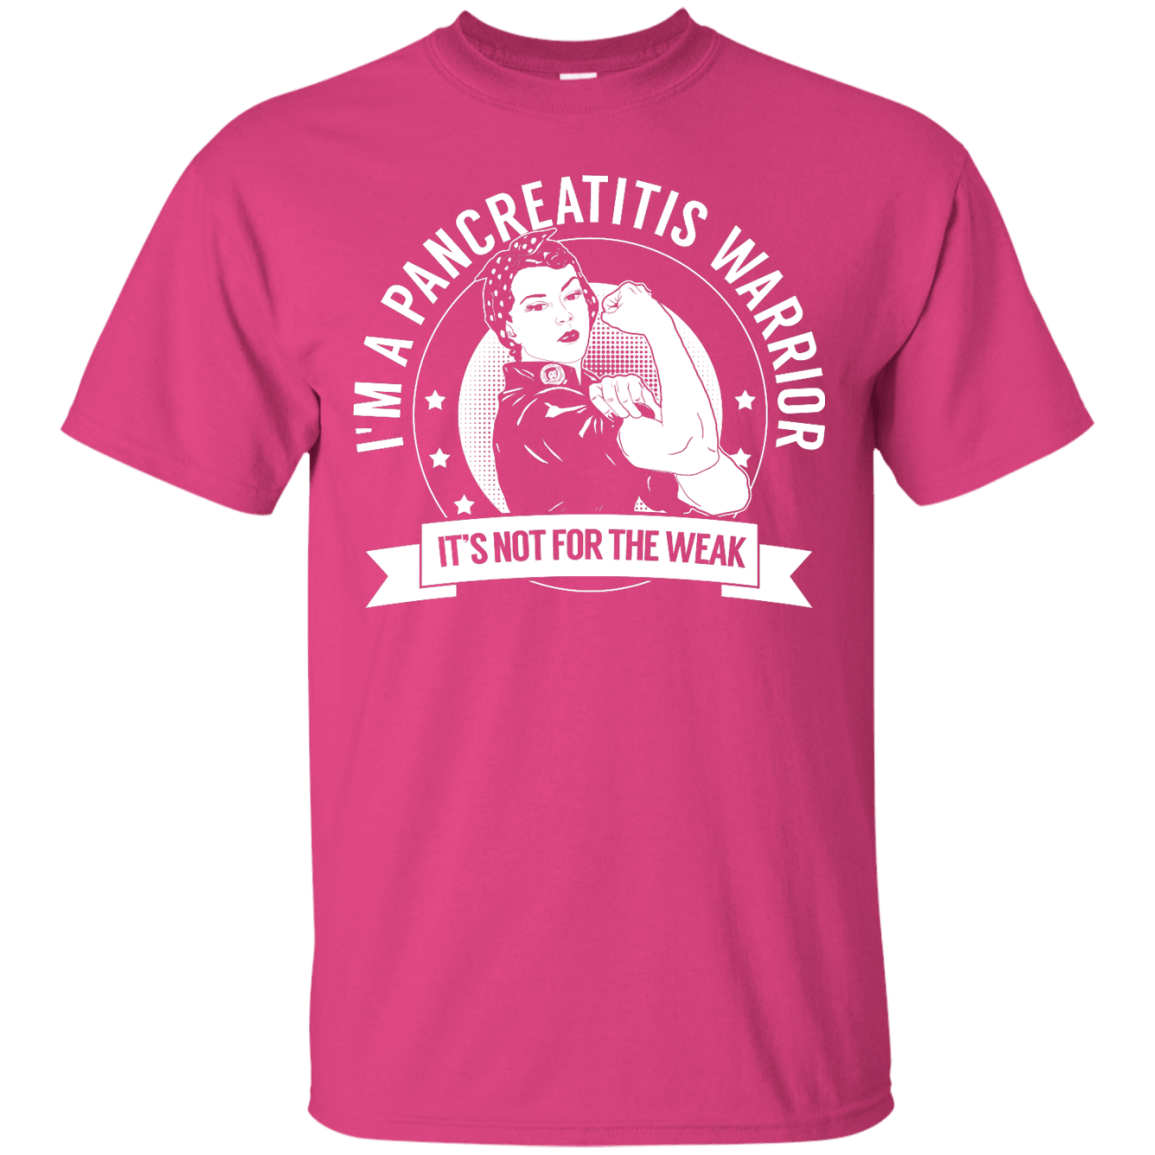 Pancreatitis Warrior Not For The Weak Unisex Shirt - The Unchargeables